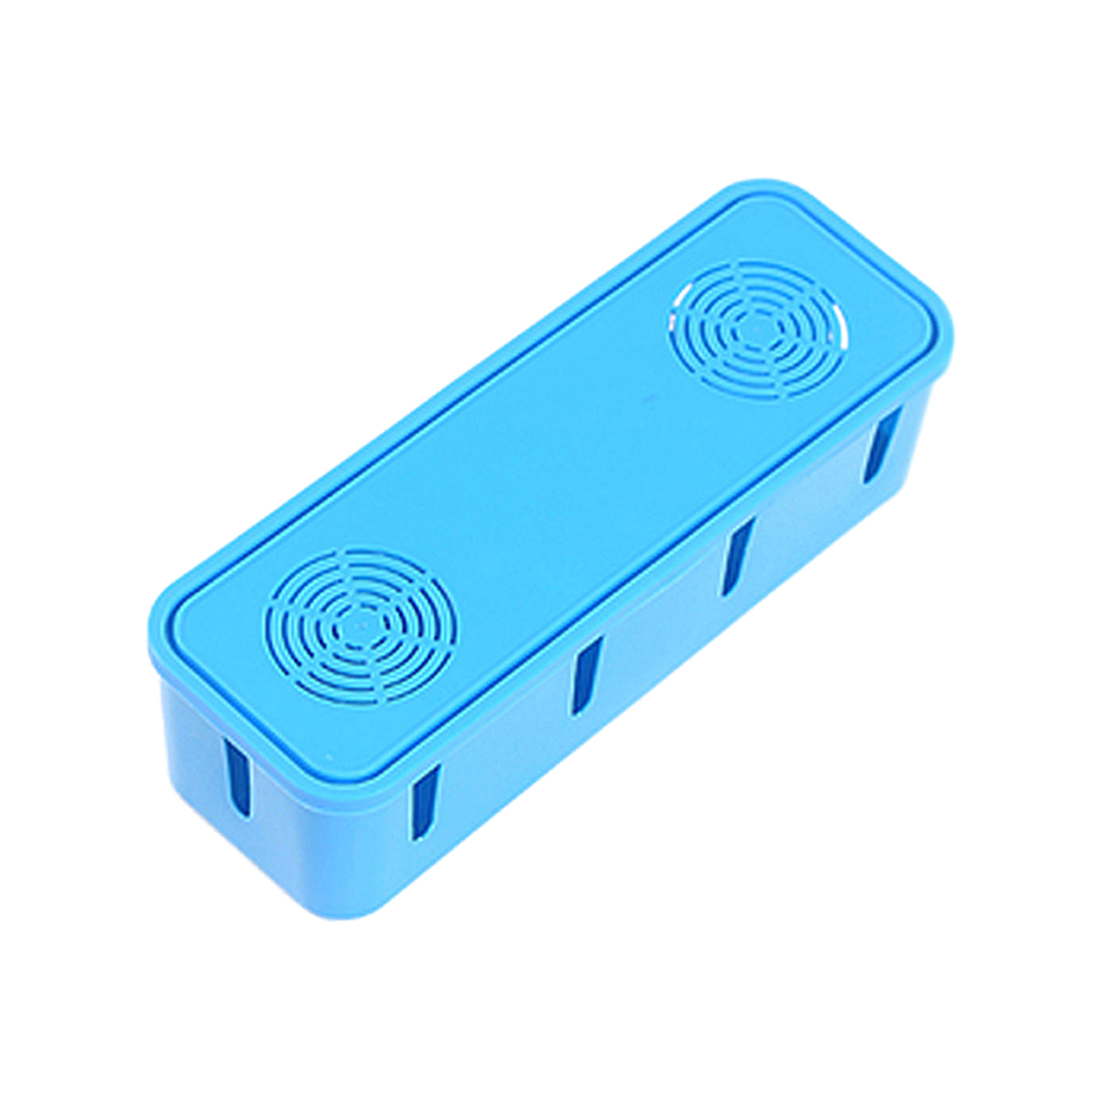 Power Strip Cord Socket Storage Boxes Organizer Safety Socket Outlet Board Container Cables Wire Case Accessories(blue)